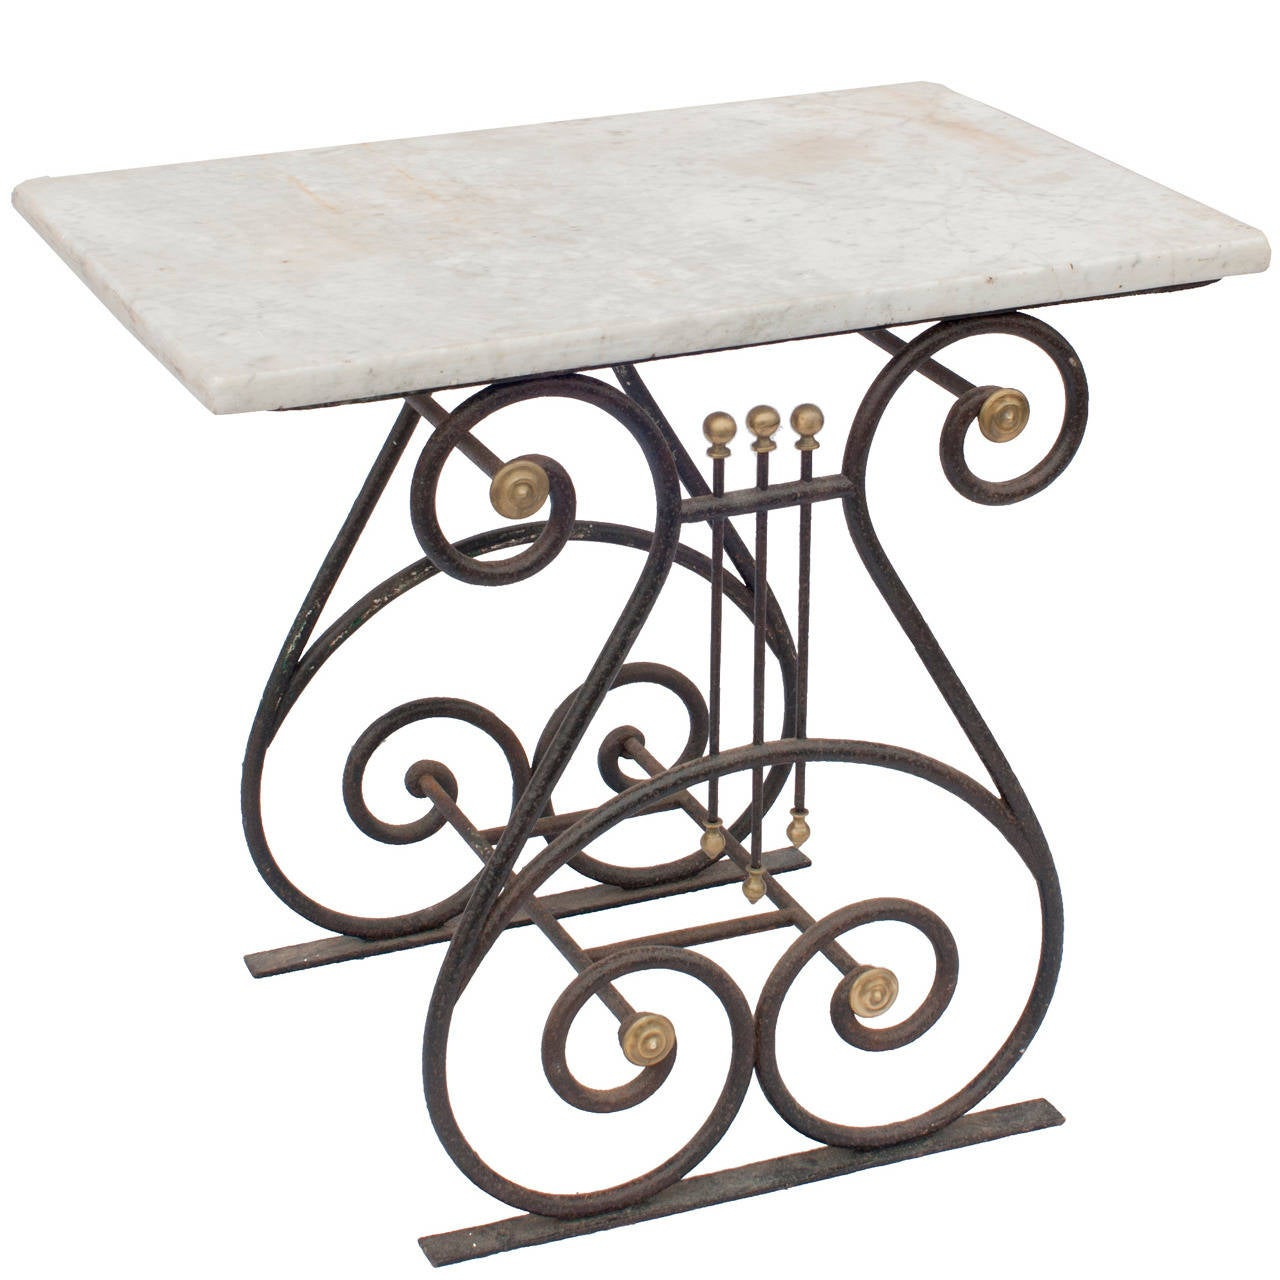 A Directoire Marble Pastry Table - All Original